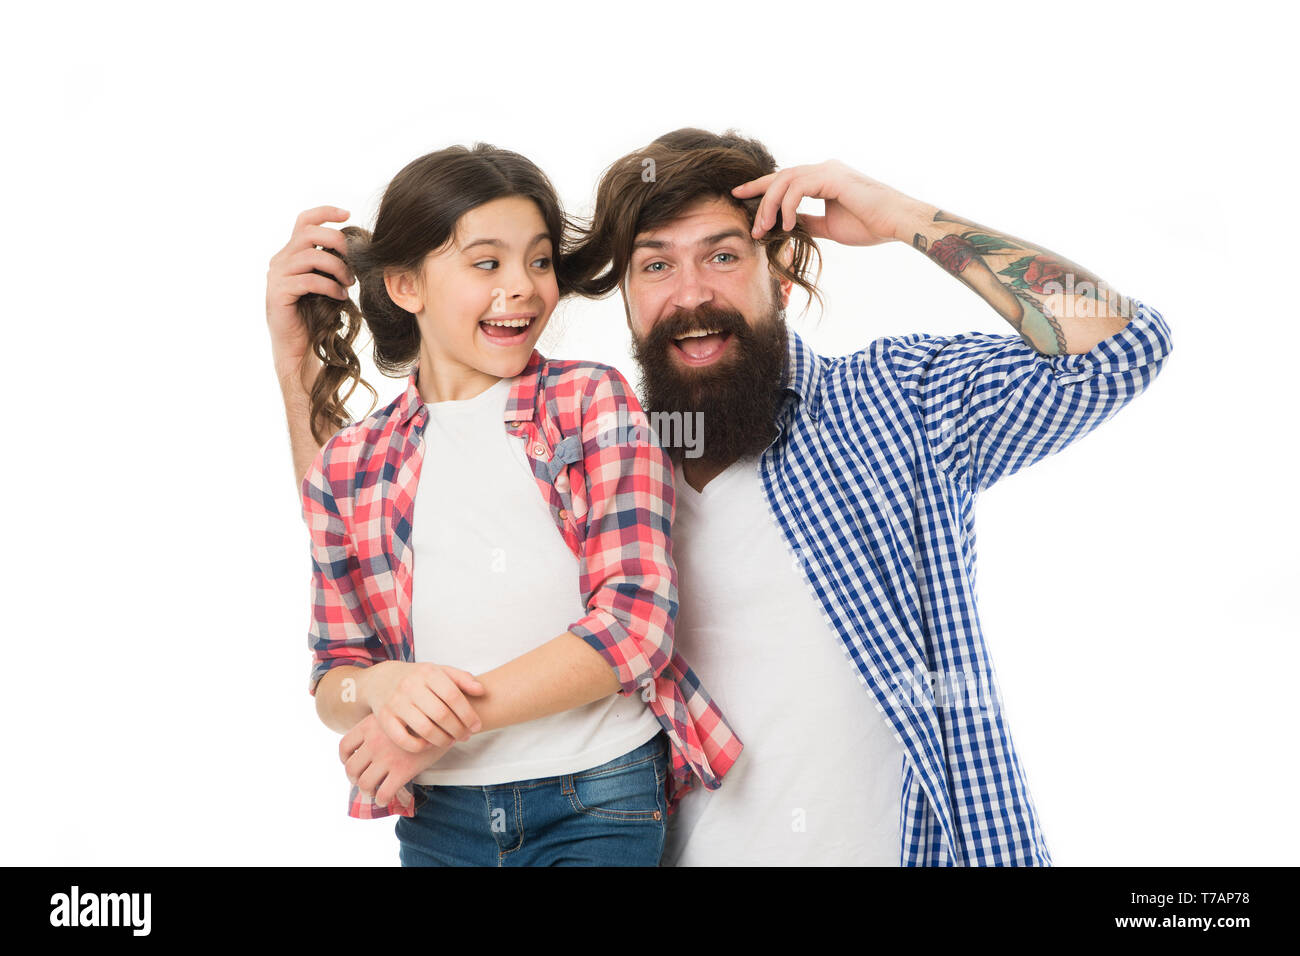 Spending nice time at home. Going crazy together. happy little girl with father. little child love her dad. fathers day. childrens day. family bond. having fun together. father and daughter. haircare. - Stock Image